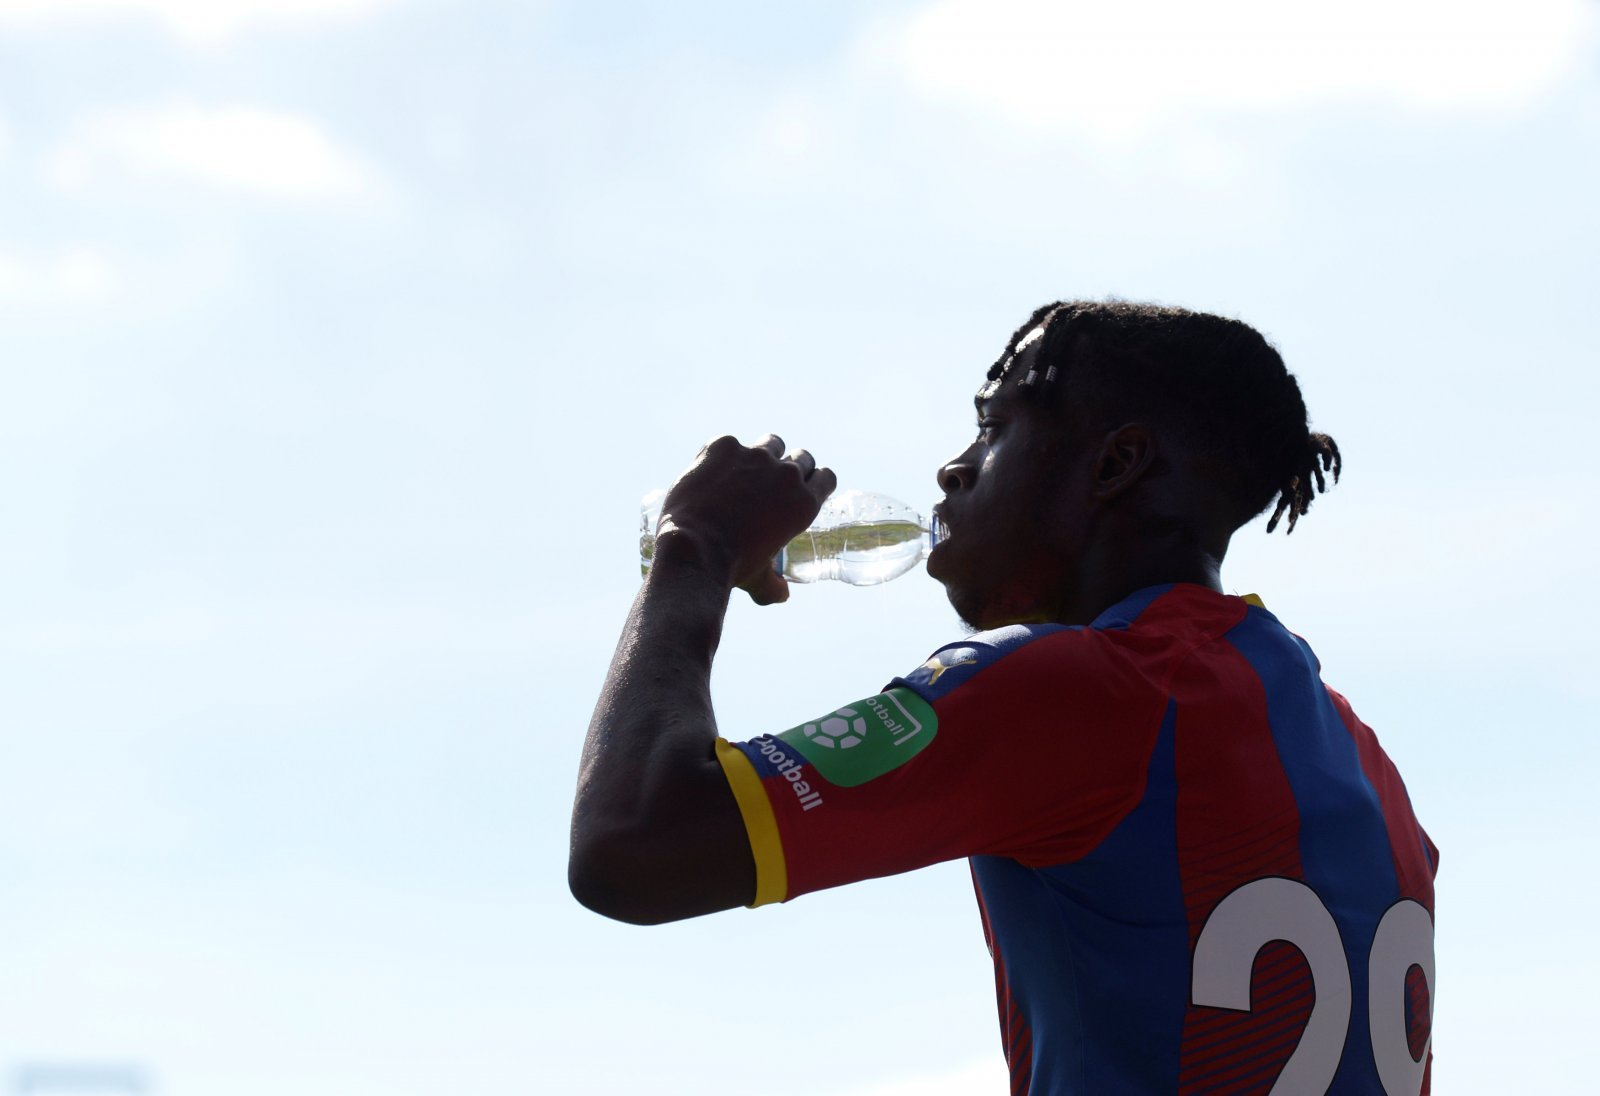 TT Introduces: Crystal Palace's new star Aaron Wan-Bissaka